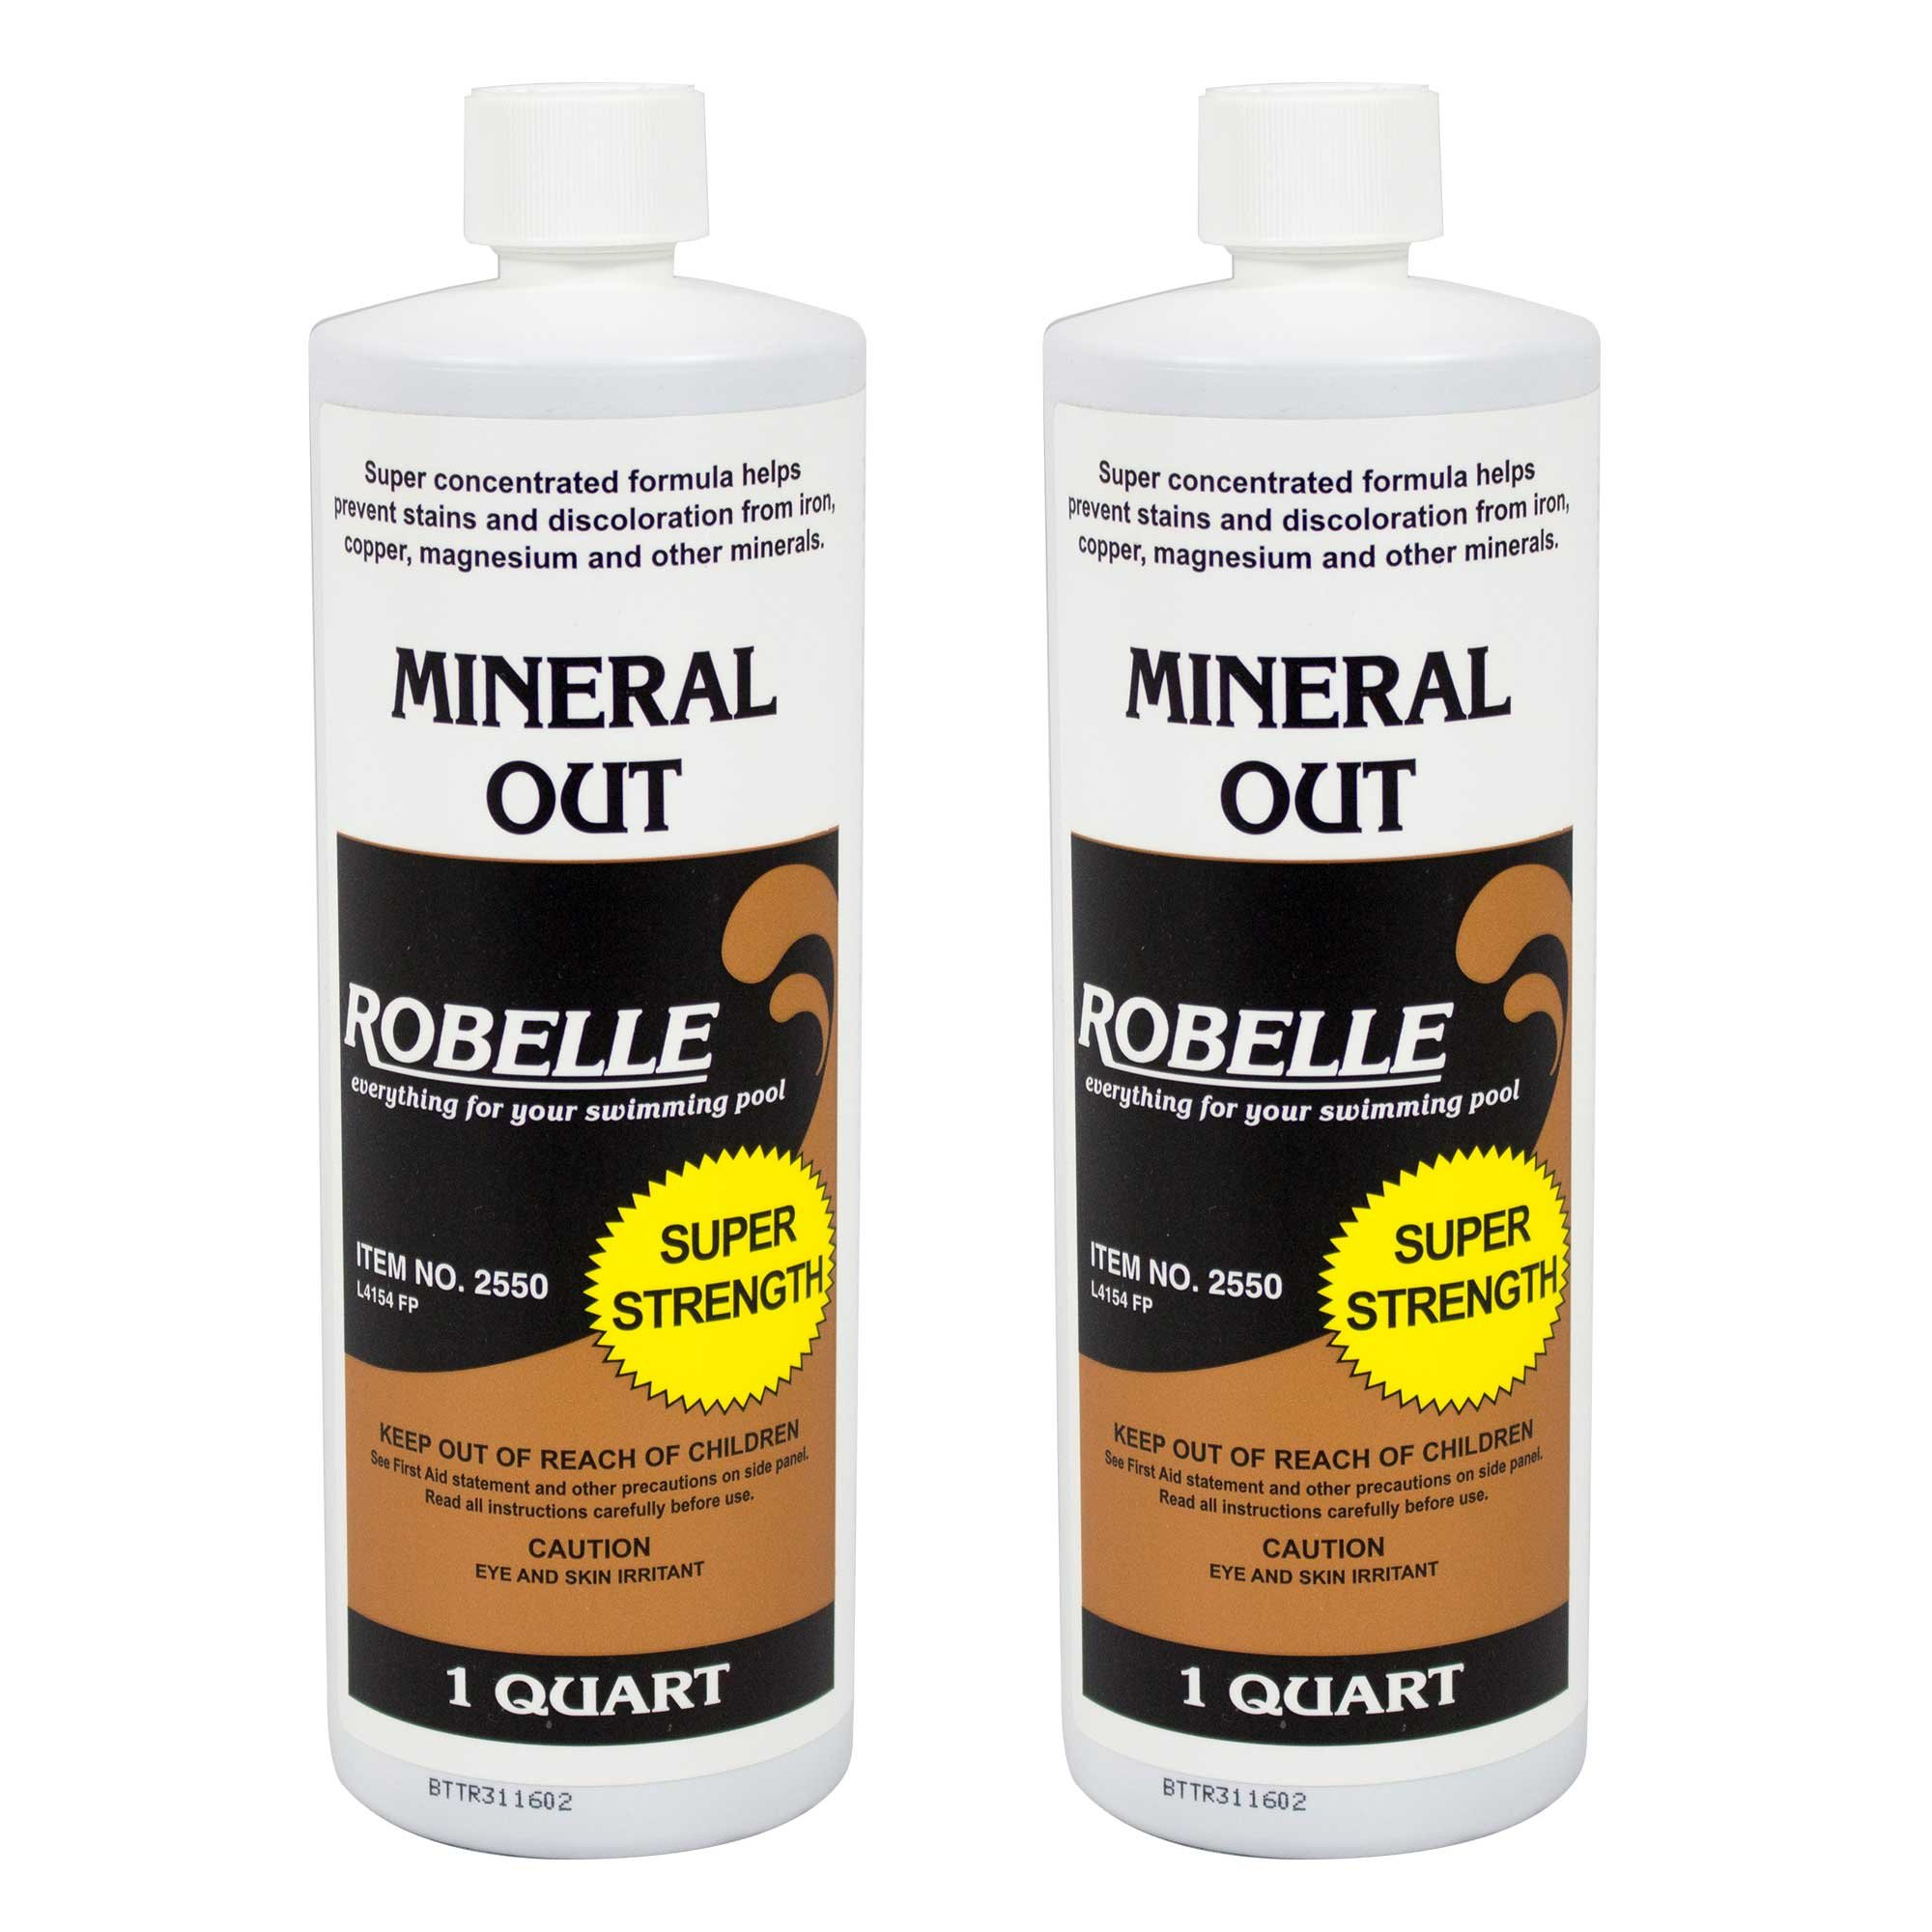 Robelle 2550-02 Mineral Out Stain Remover for Swimming Pools, 1-Quart, 2-Pack by Robelle